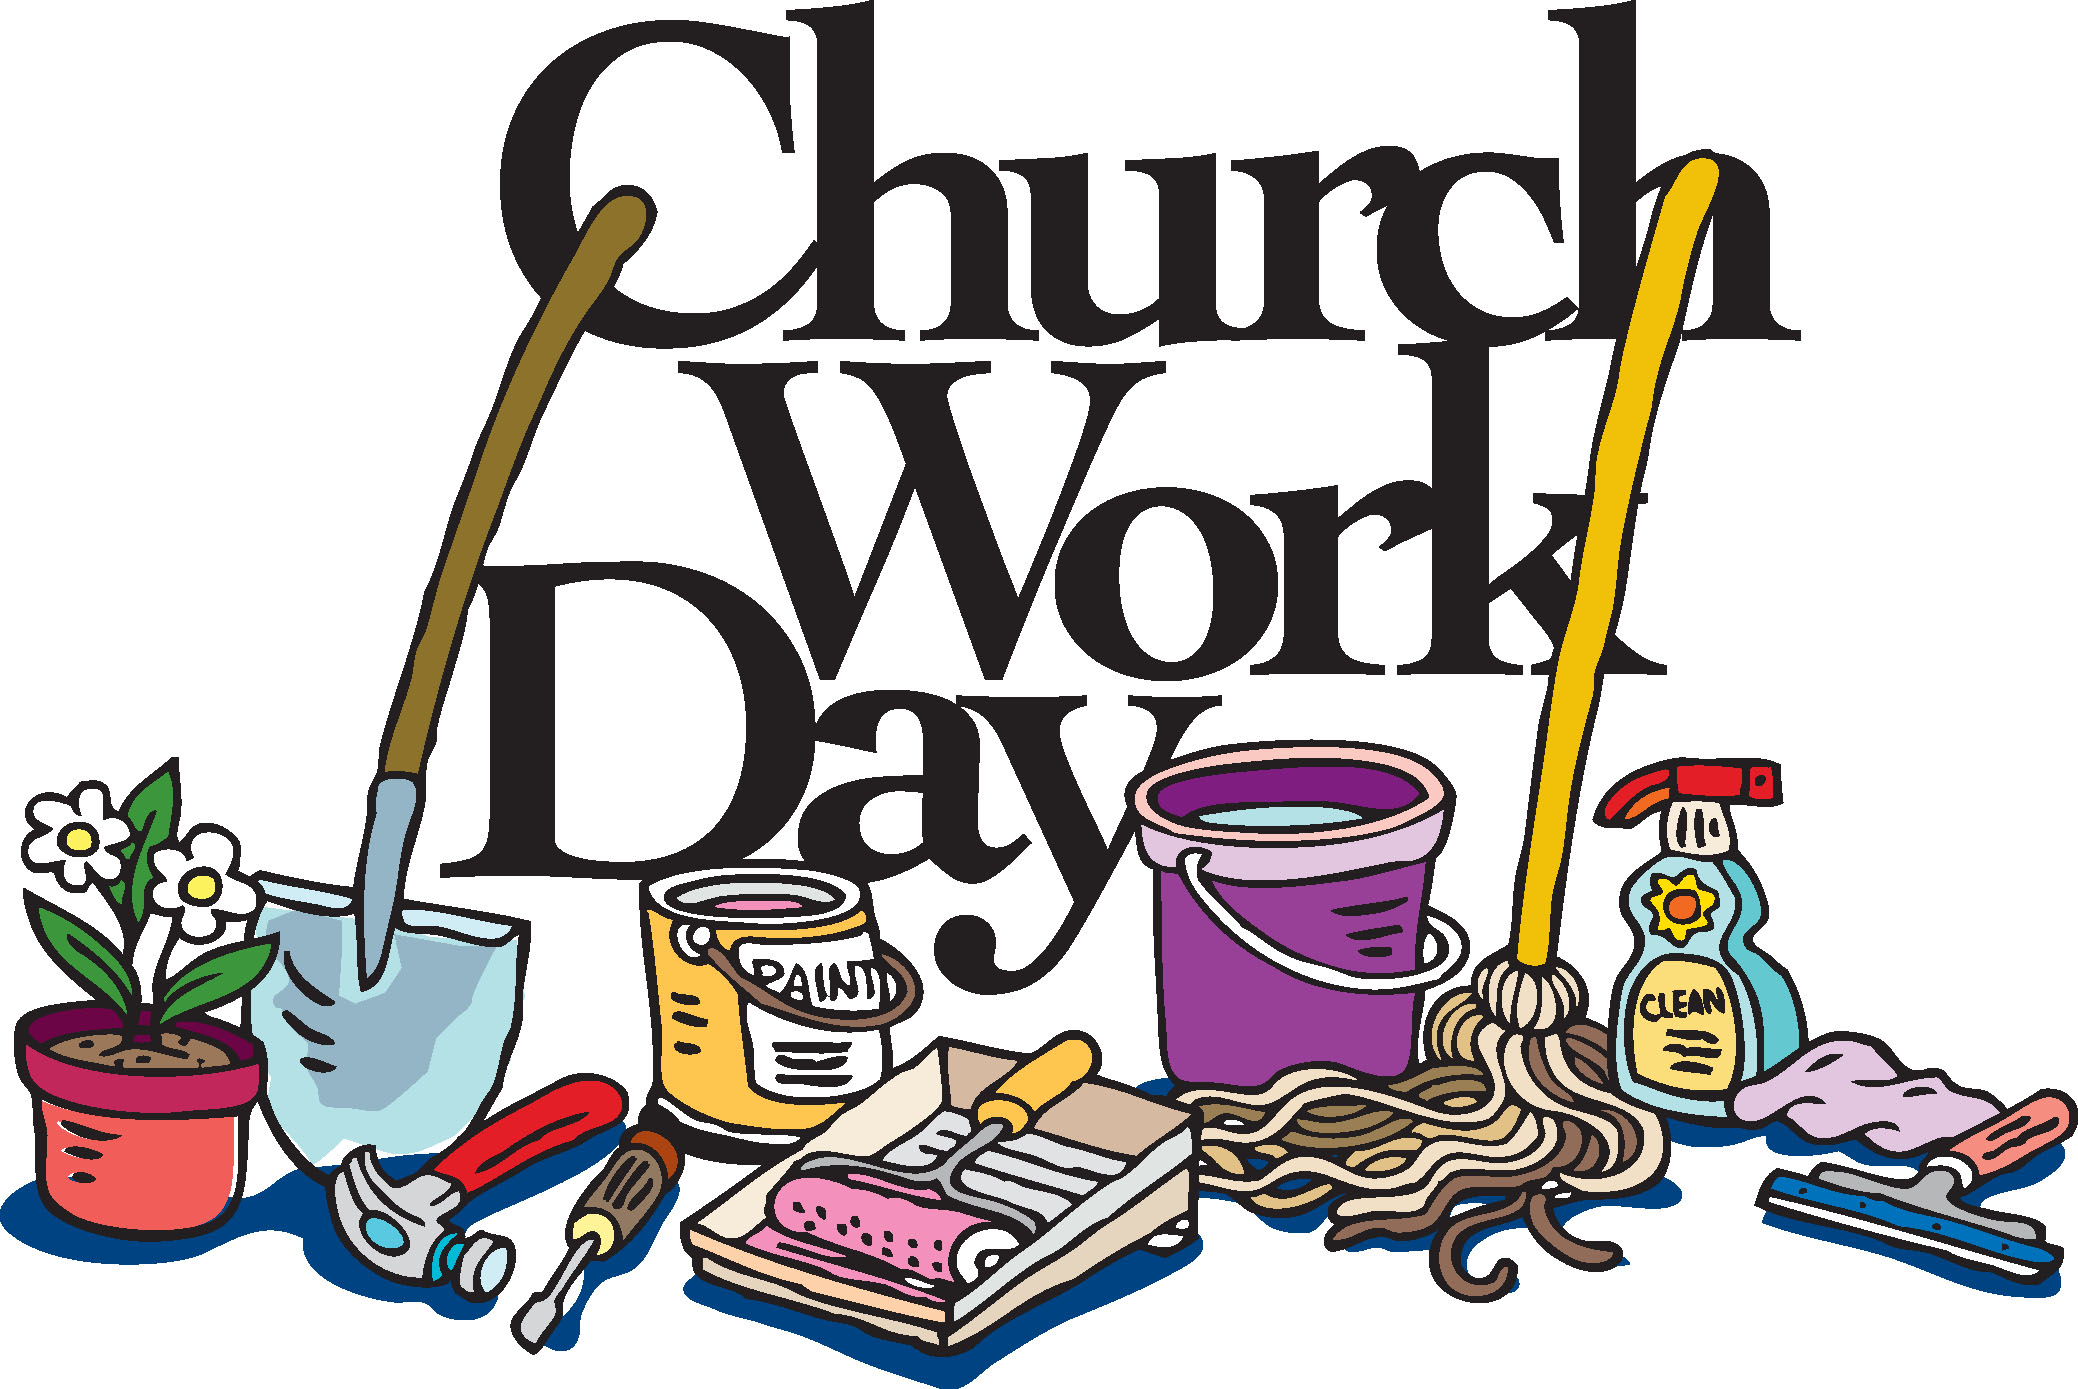 church work day clip art clipart panda free clipart images rh clipartpanda com picture day clipart school picture day clipart school